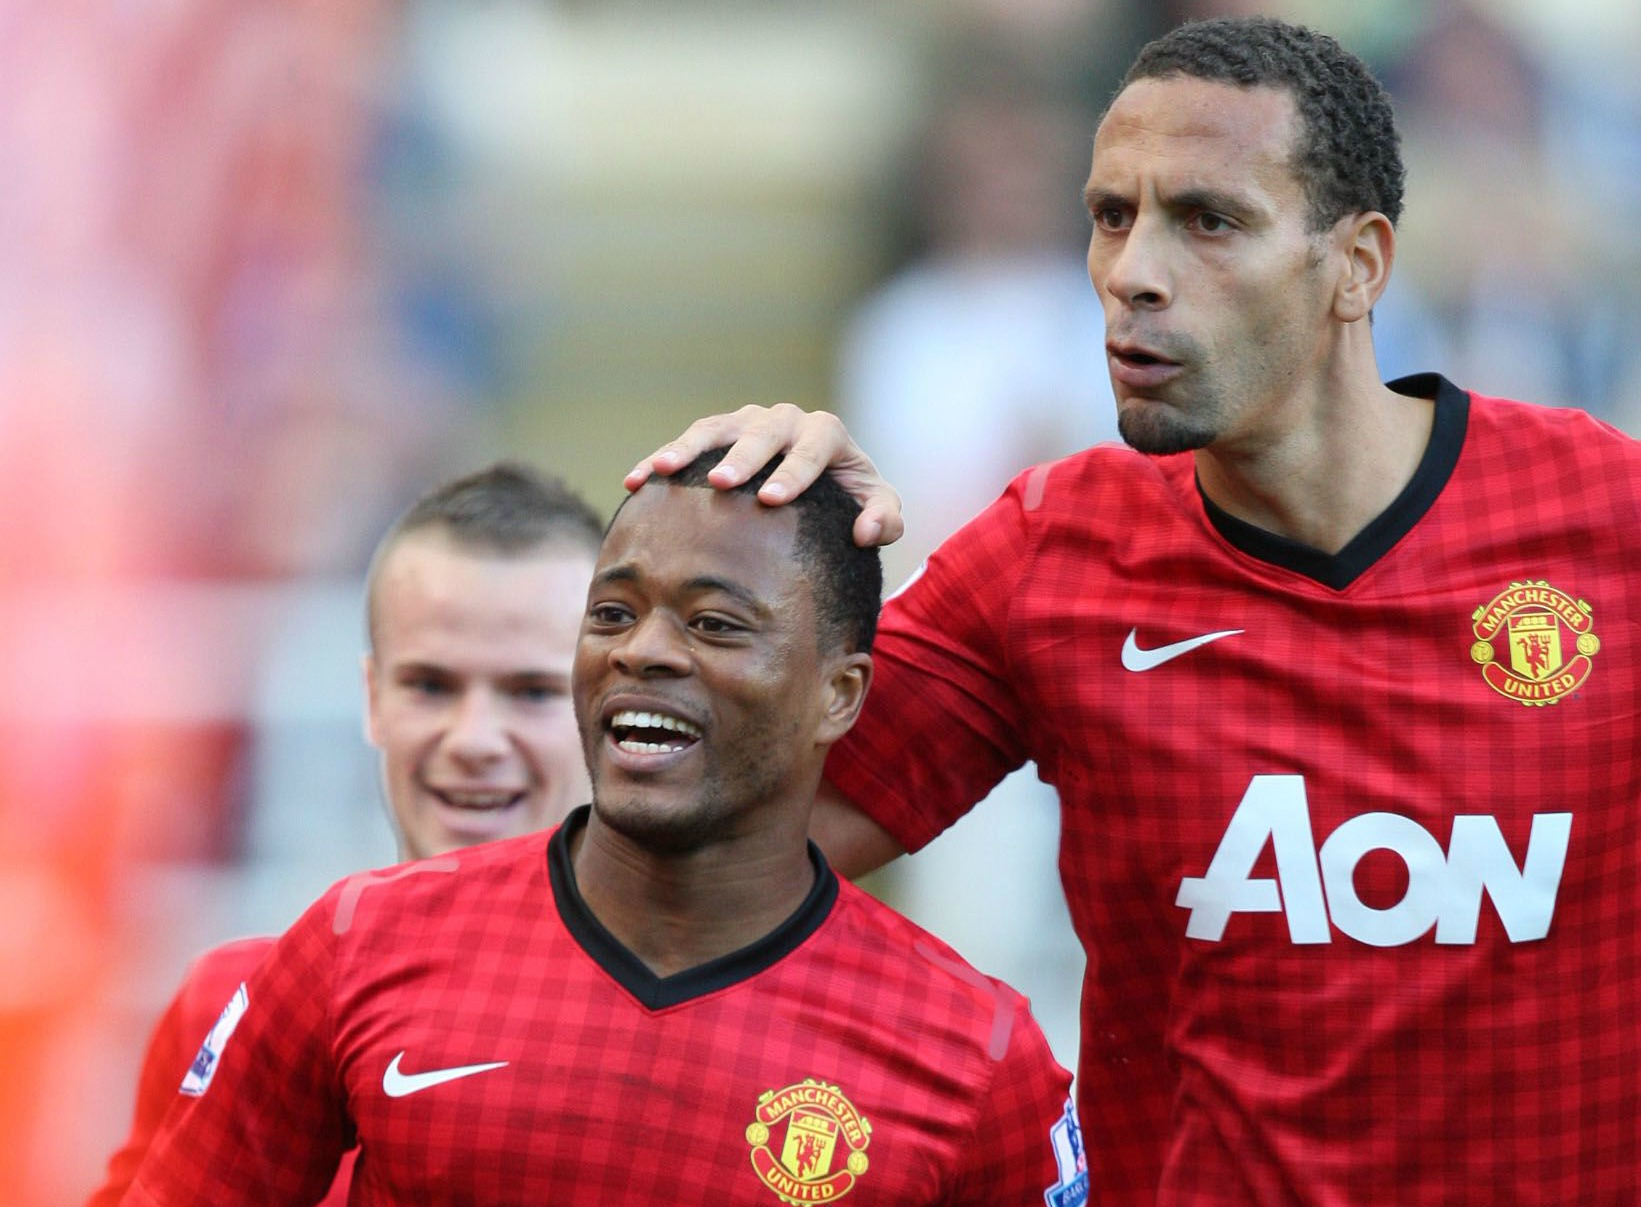 Rio Ferdinand sends Manchester United fans into frenzy by hinting Patrice Evra is returning 'home'